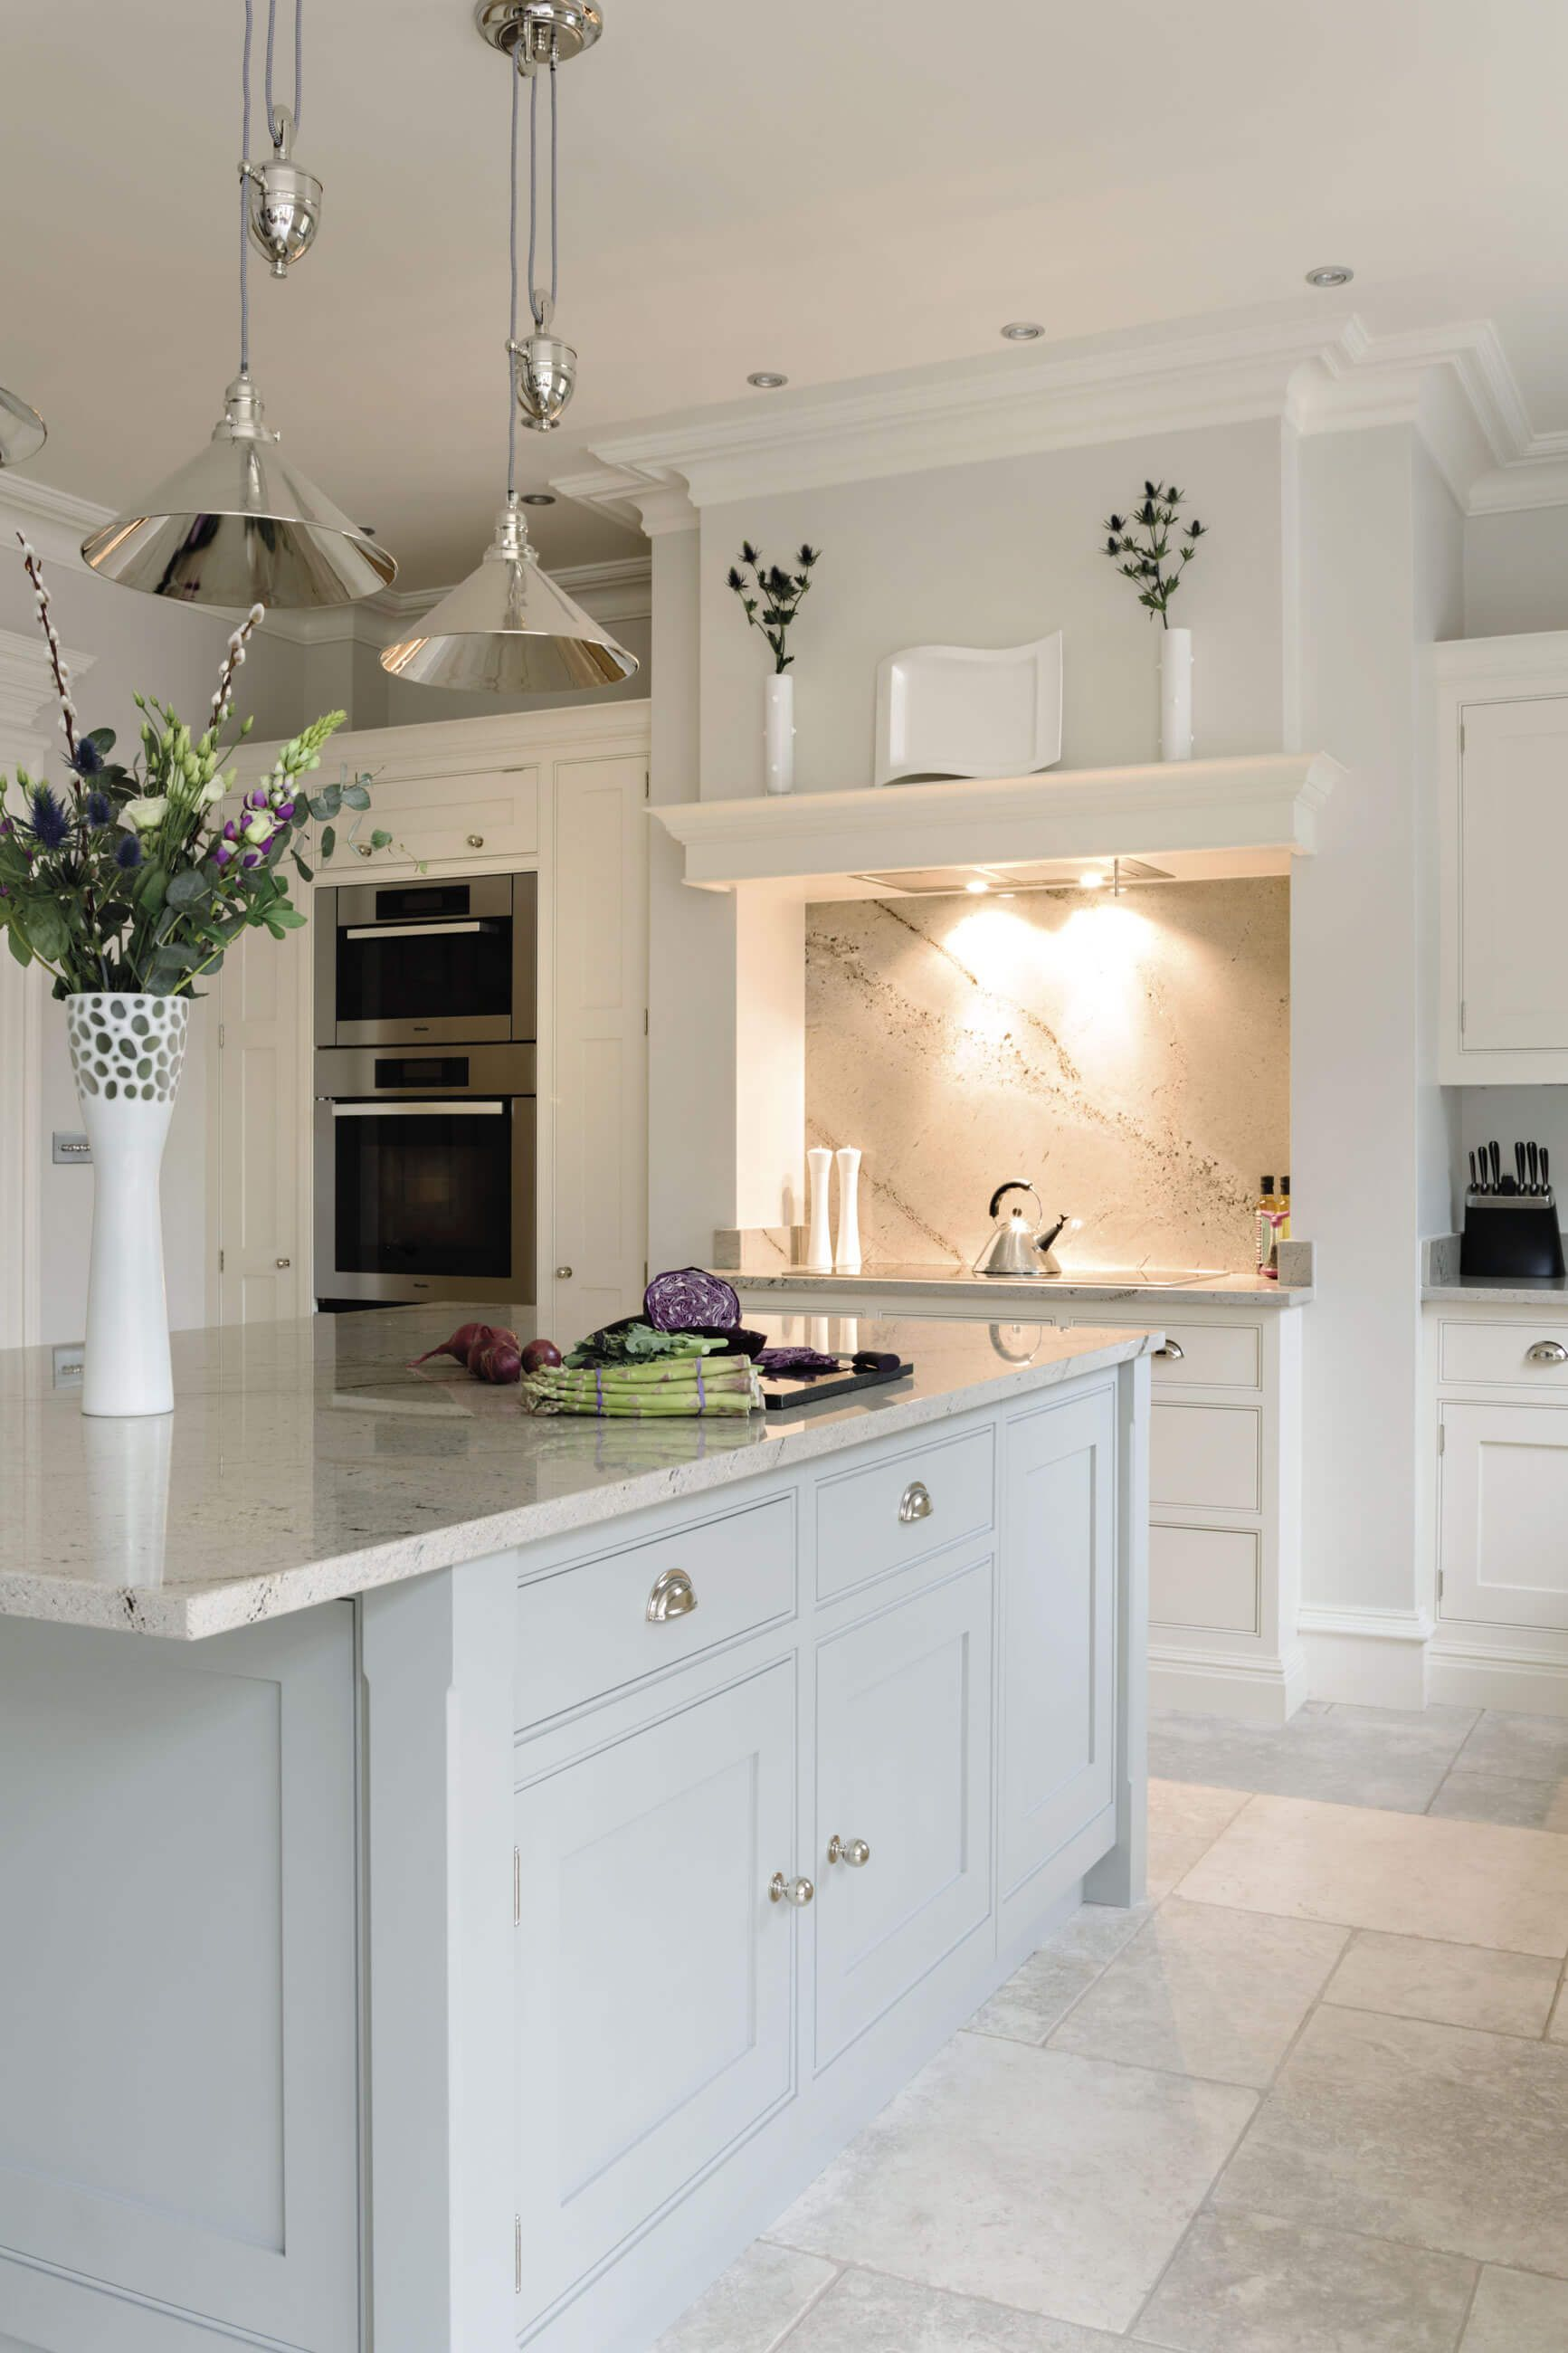 This Open Plan Kitchen Is The Perfect Space For Family Dining